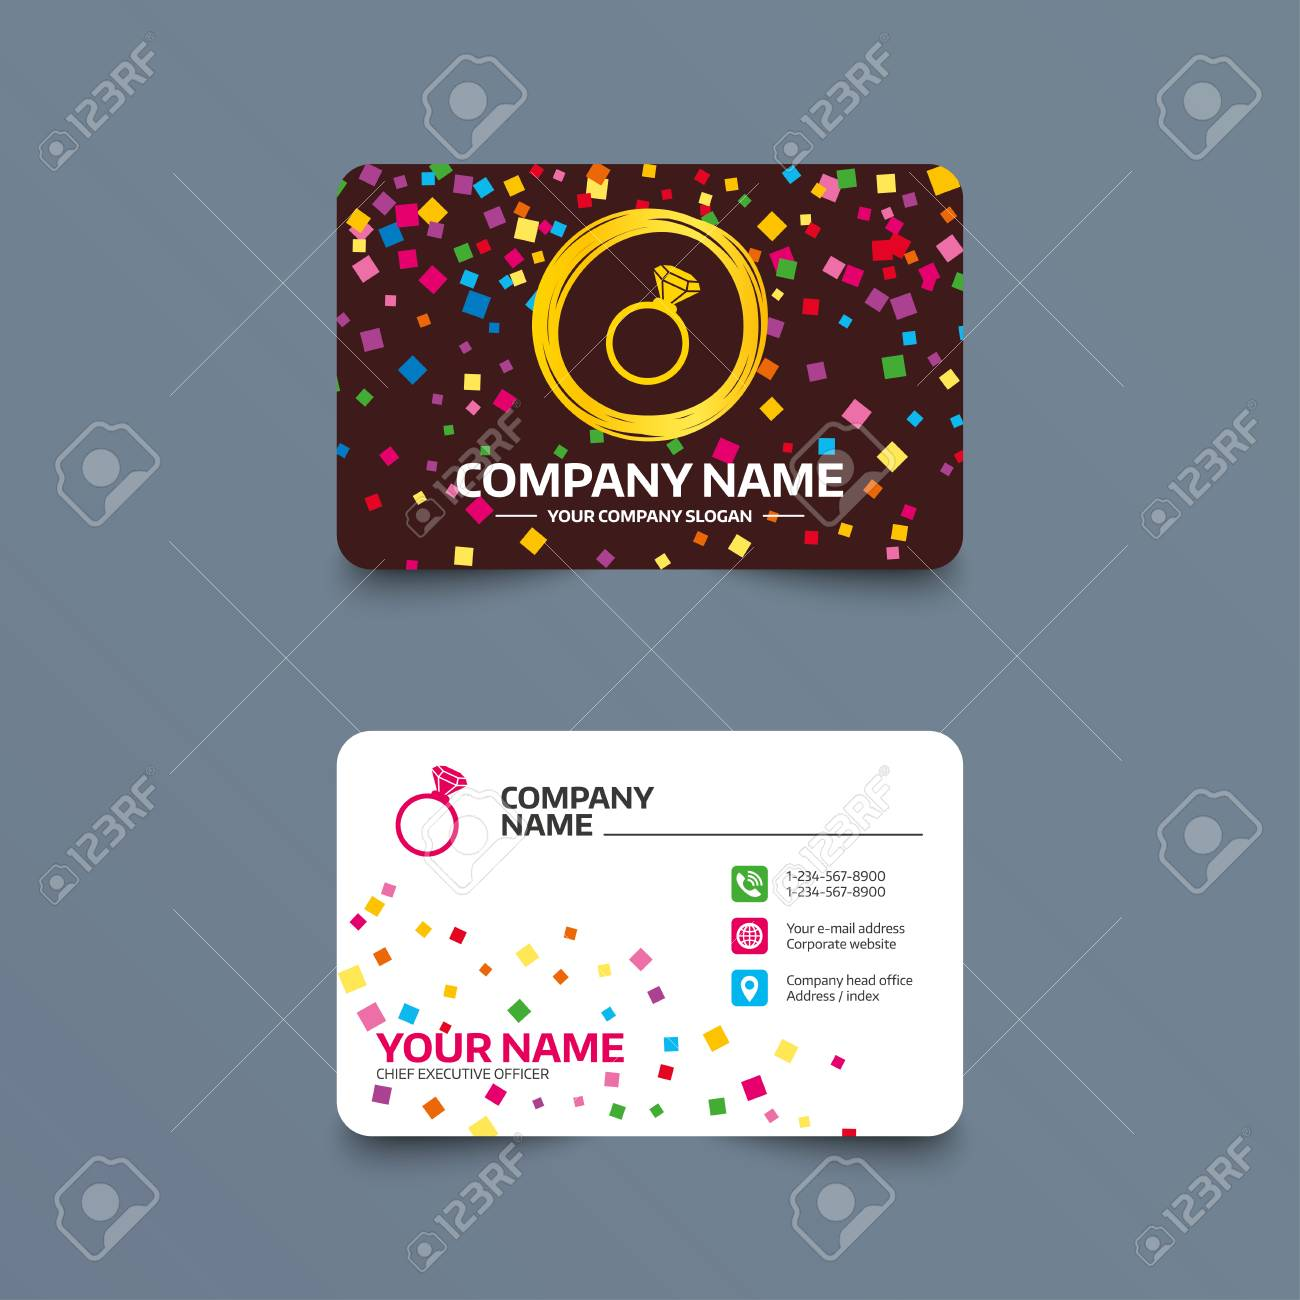 Business card template with confetti pieces ring sign icon business card template with confetti pieces ring sign icon jewelry with diamond symbol flashek Choice Image